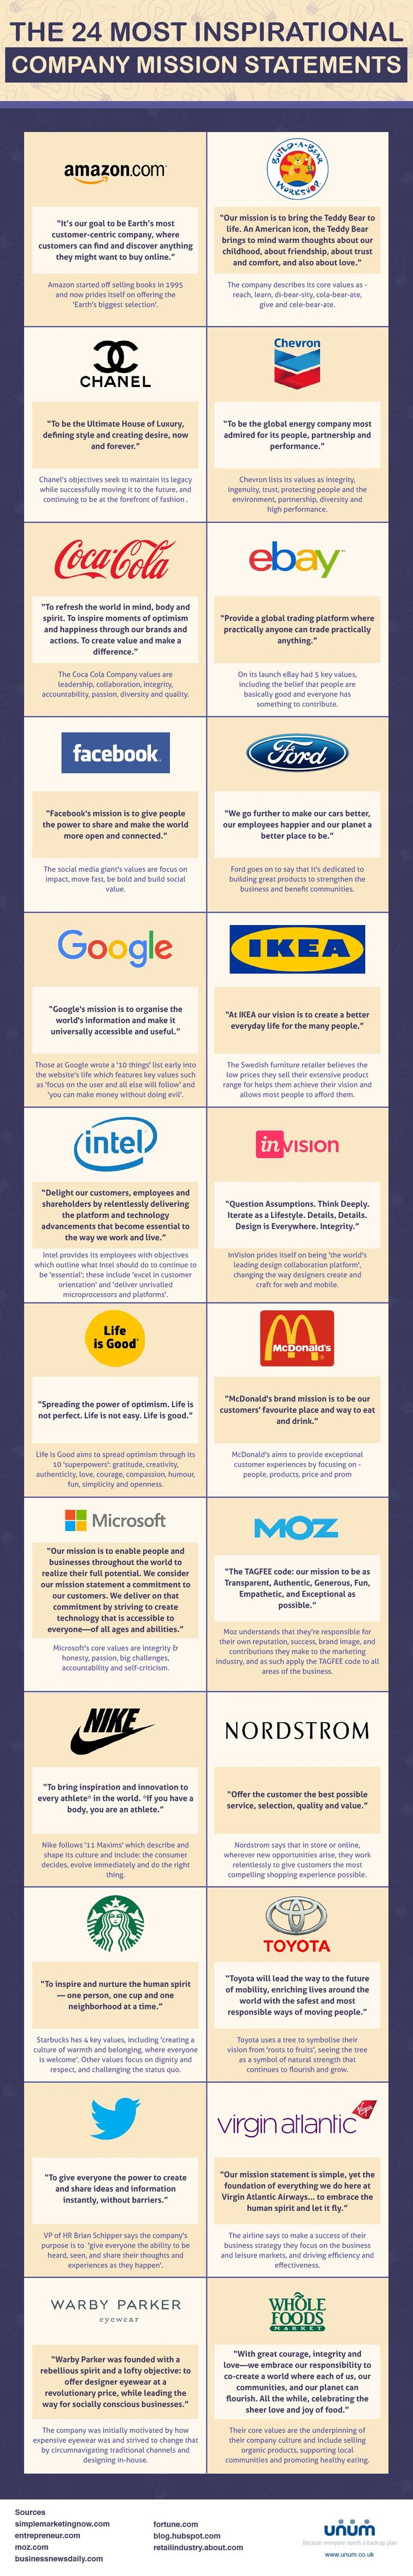 http://www.adweek.com/adfreak/infographic-24-most-inspirational-company-mission-statements-167260